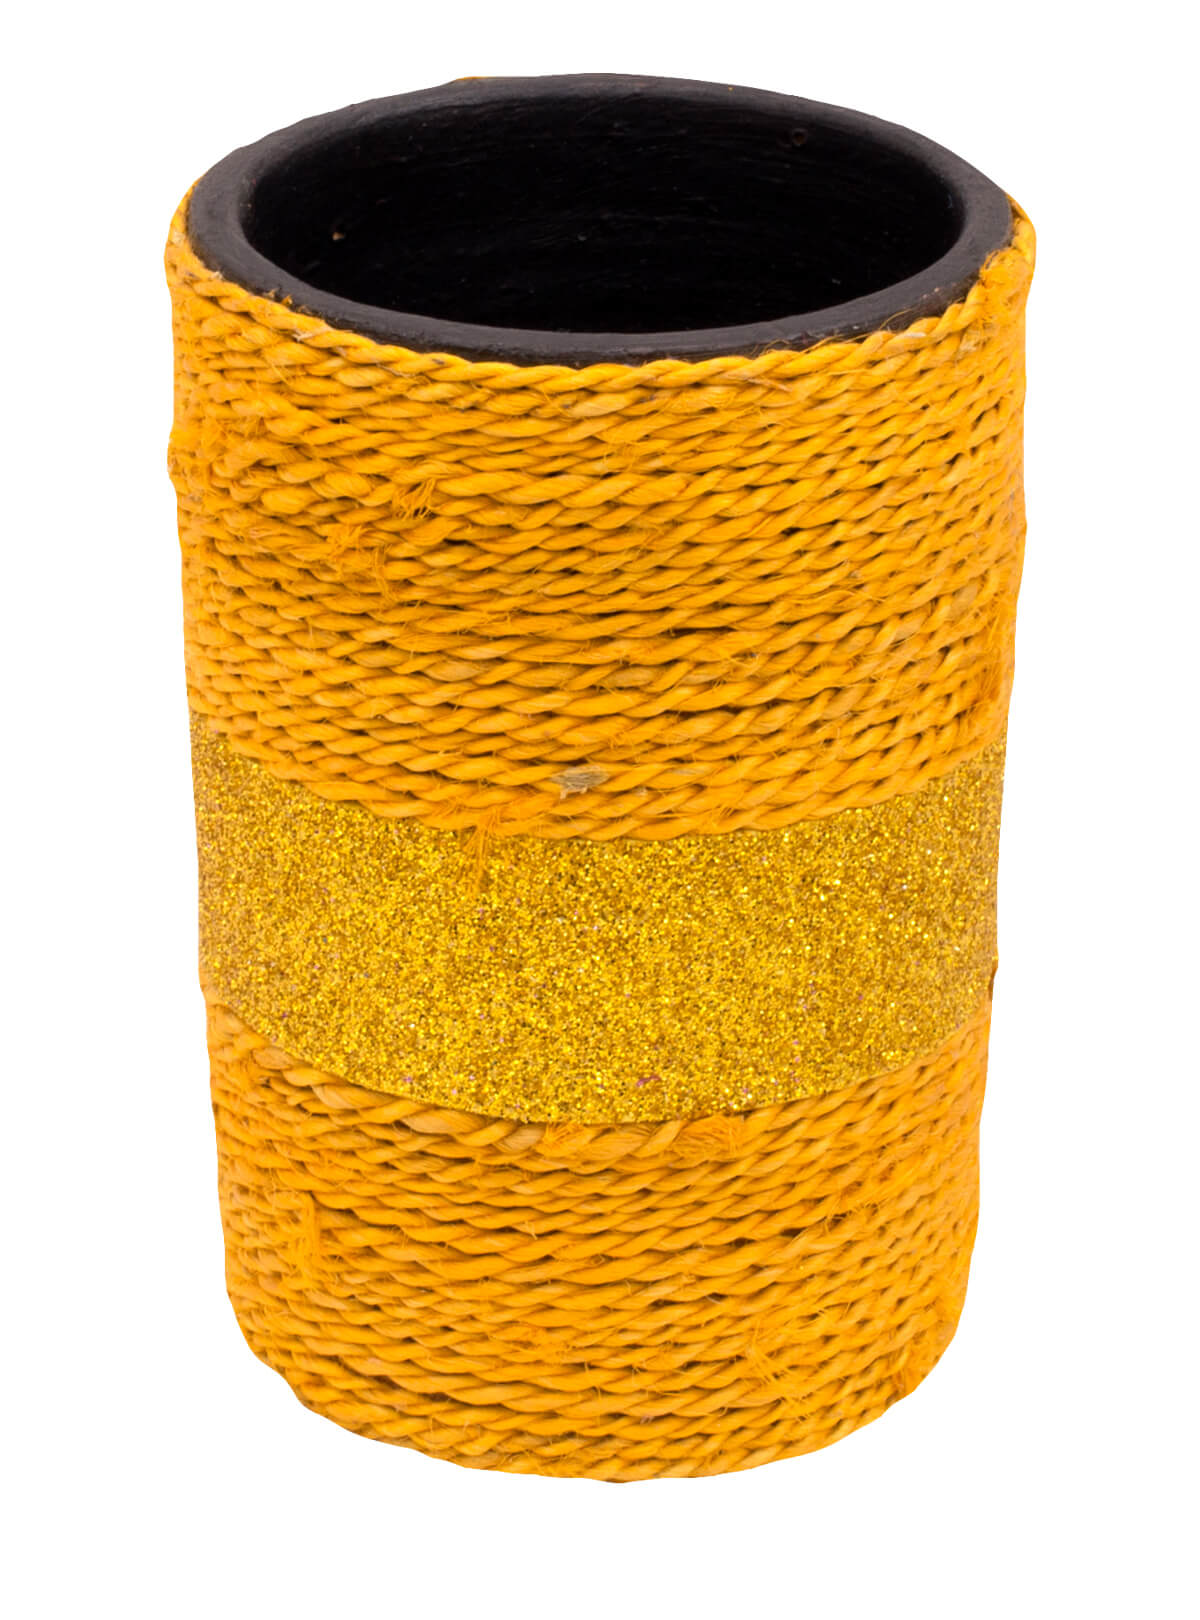 Yellow Clay Jute Pen Holder